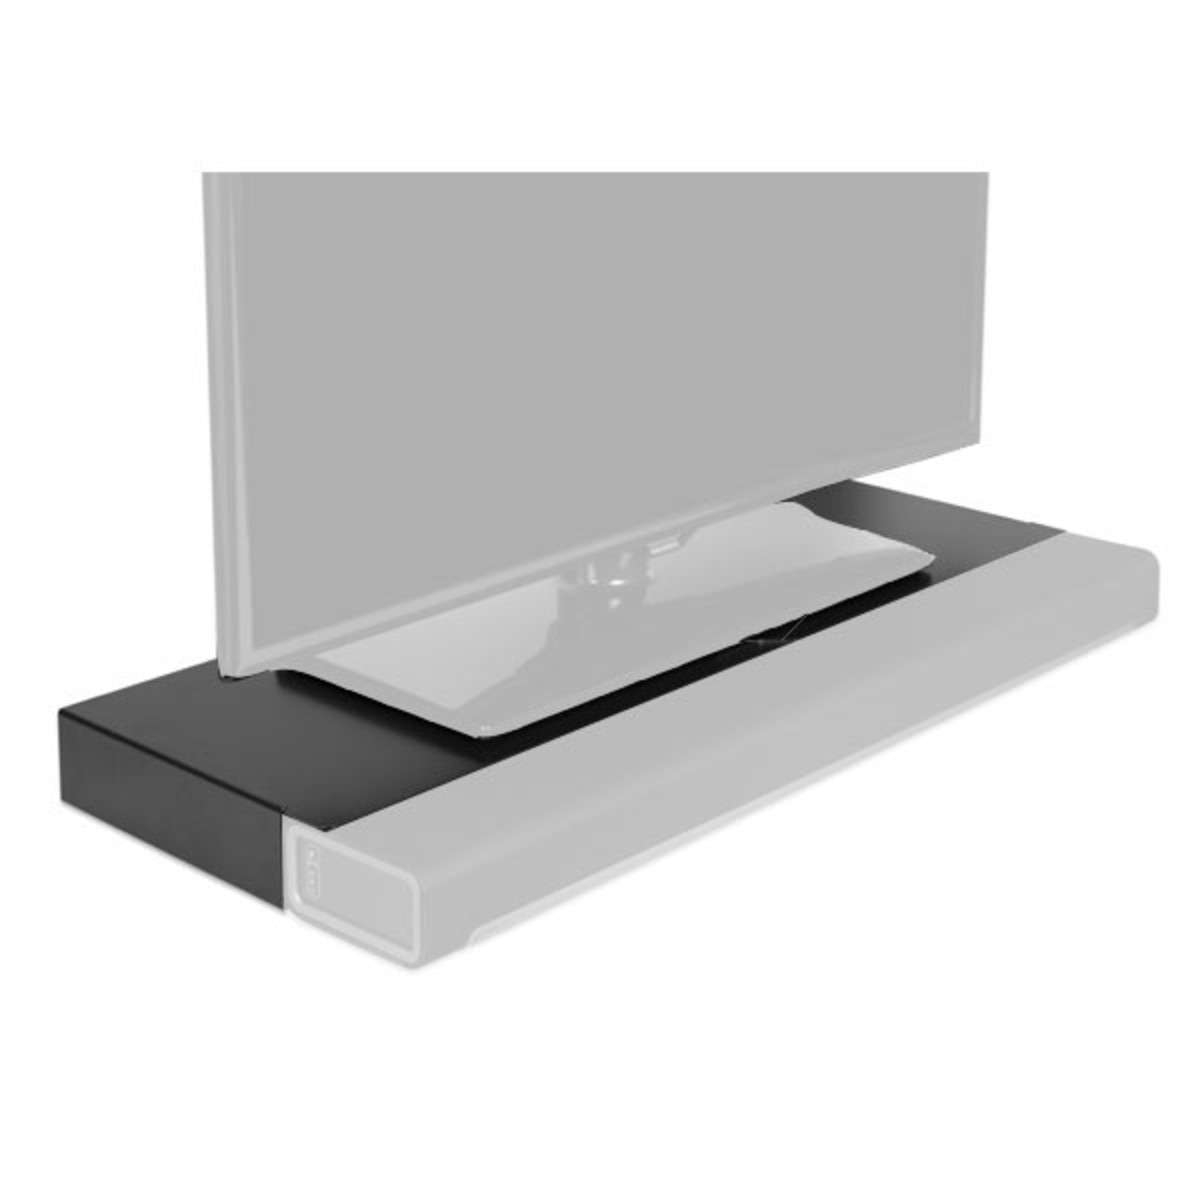 Flexson Tv Stand For Sonos Playbar, Black At Gear4Music With Sonos Tv Stands (View 9 of 15)